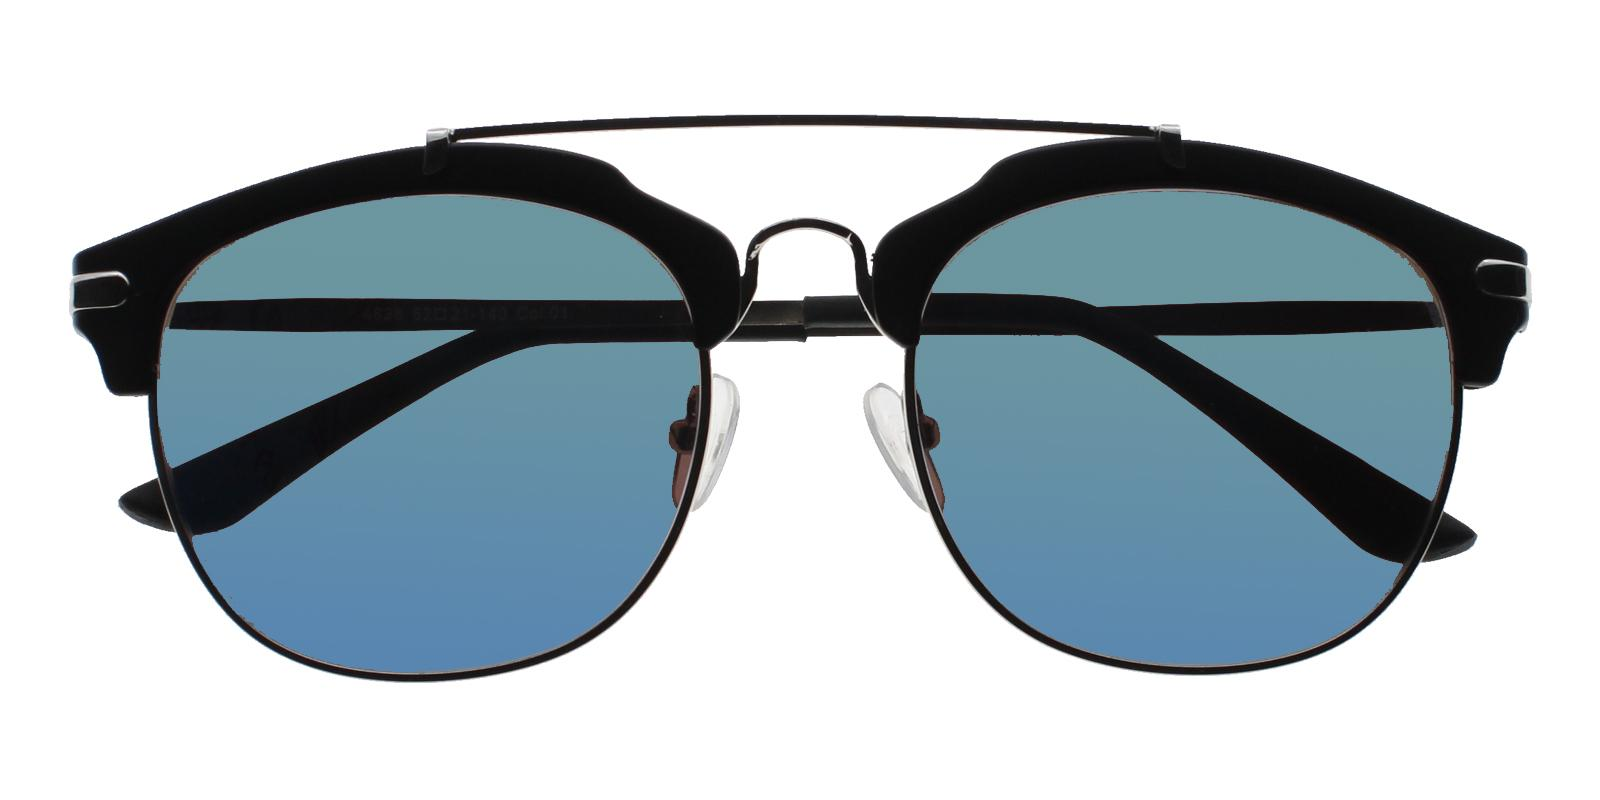 Cuba Black Acetate NosePads , Sunglasses Frames from ABBE Glasses